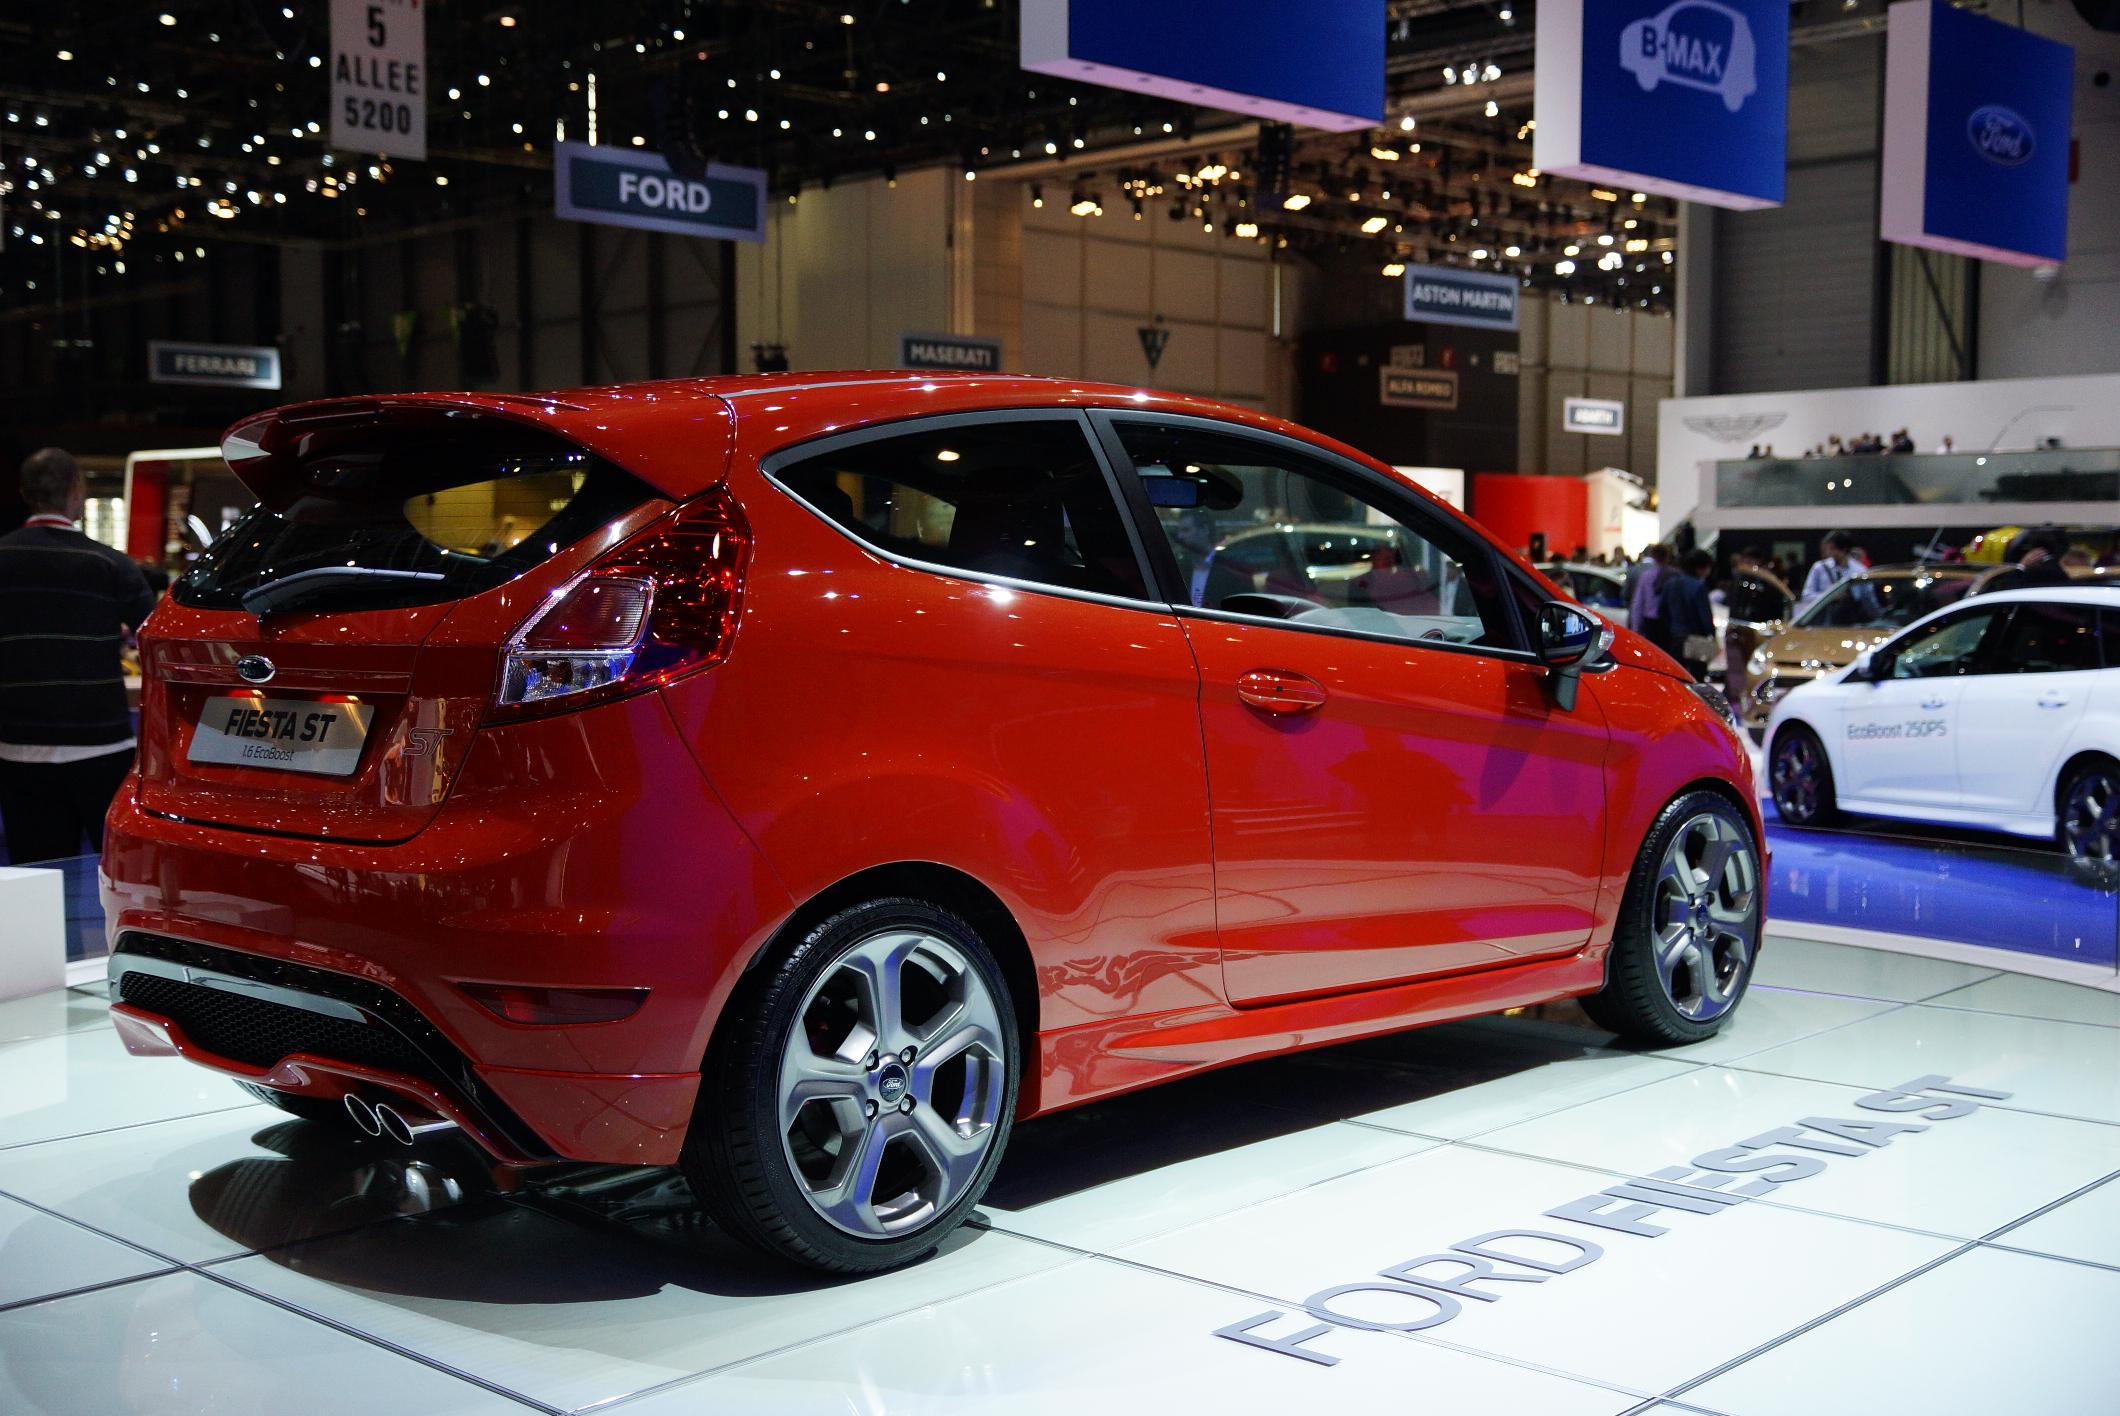 Ford Fiesta ST Geneva 2012 Rear